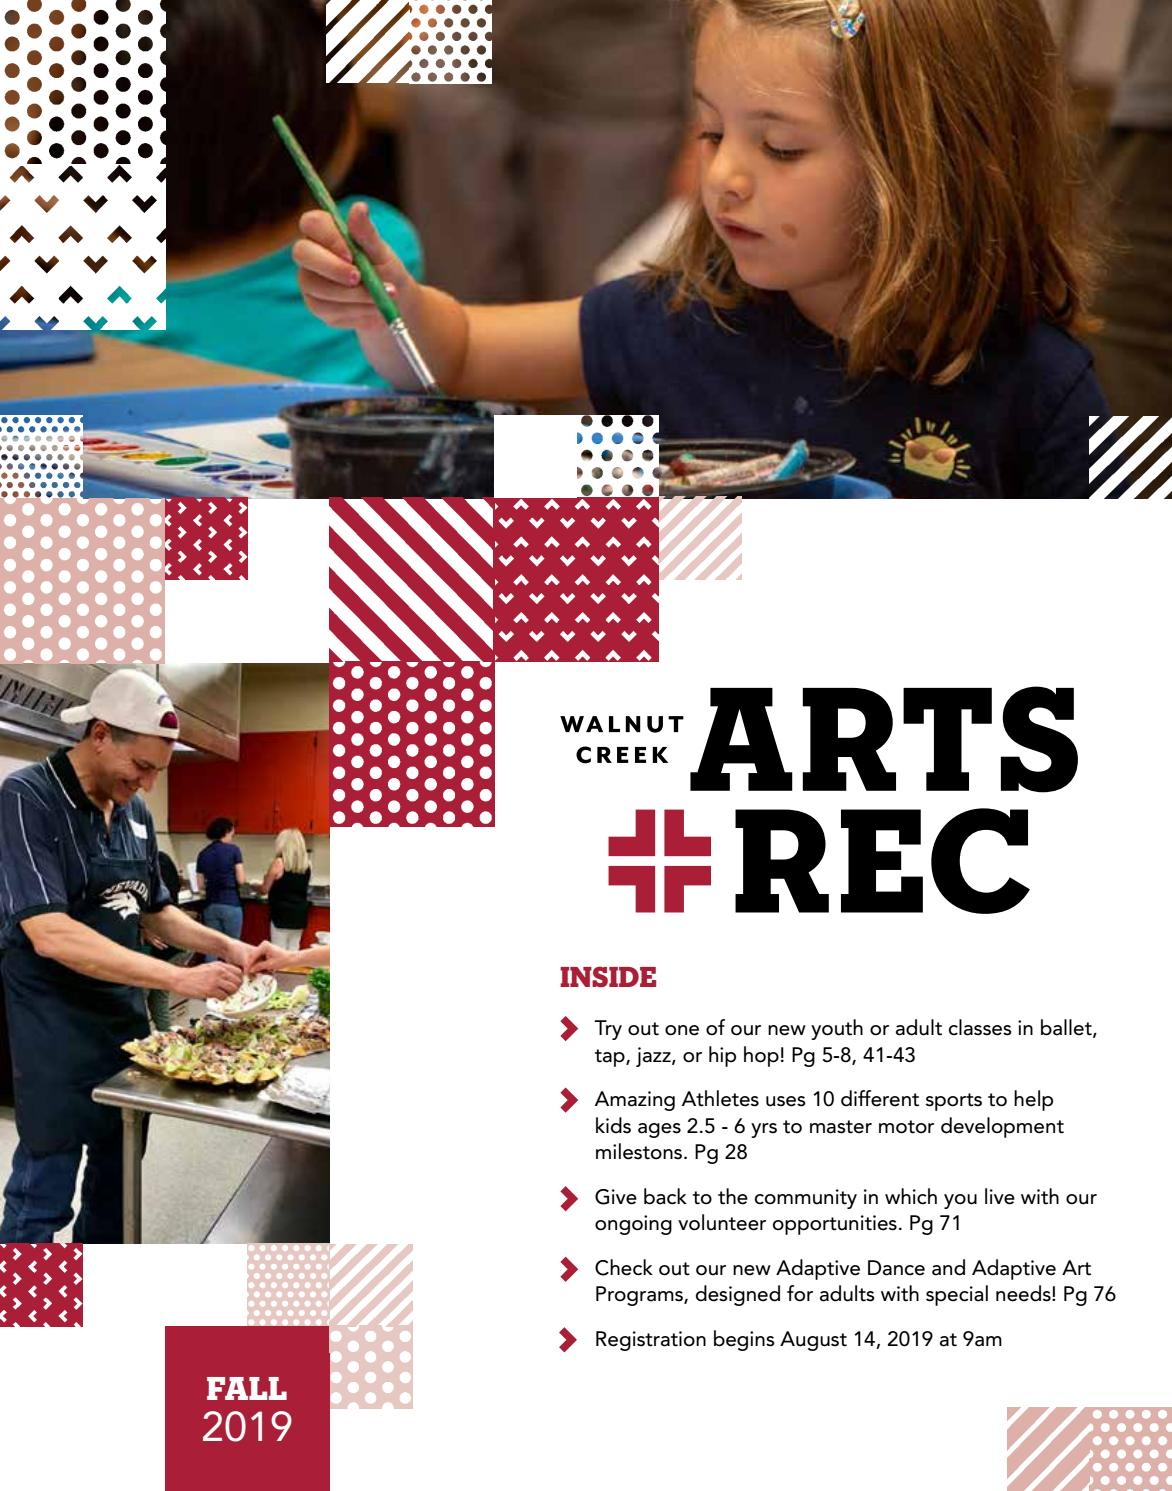 City of Walnut Creek Guide to Arts + Rec - Fall 2019 by City of